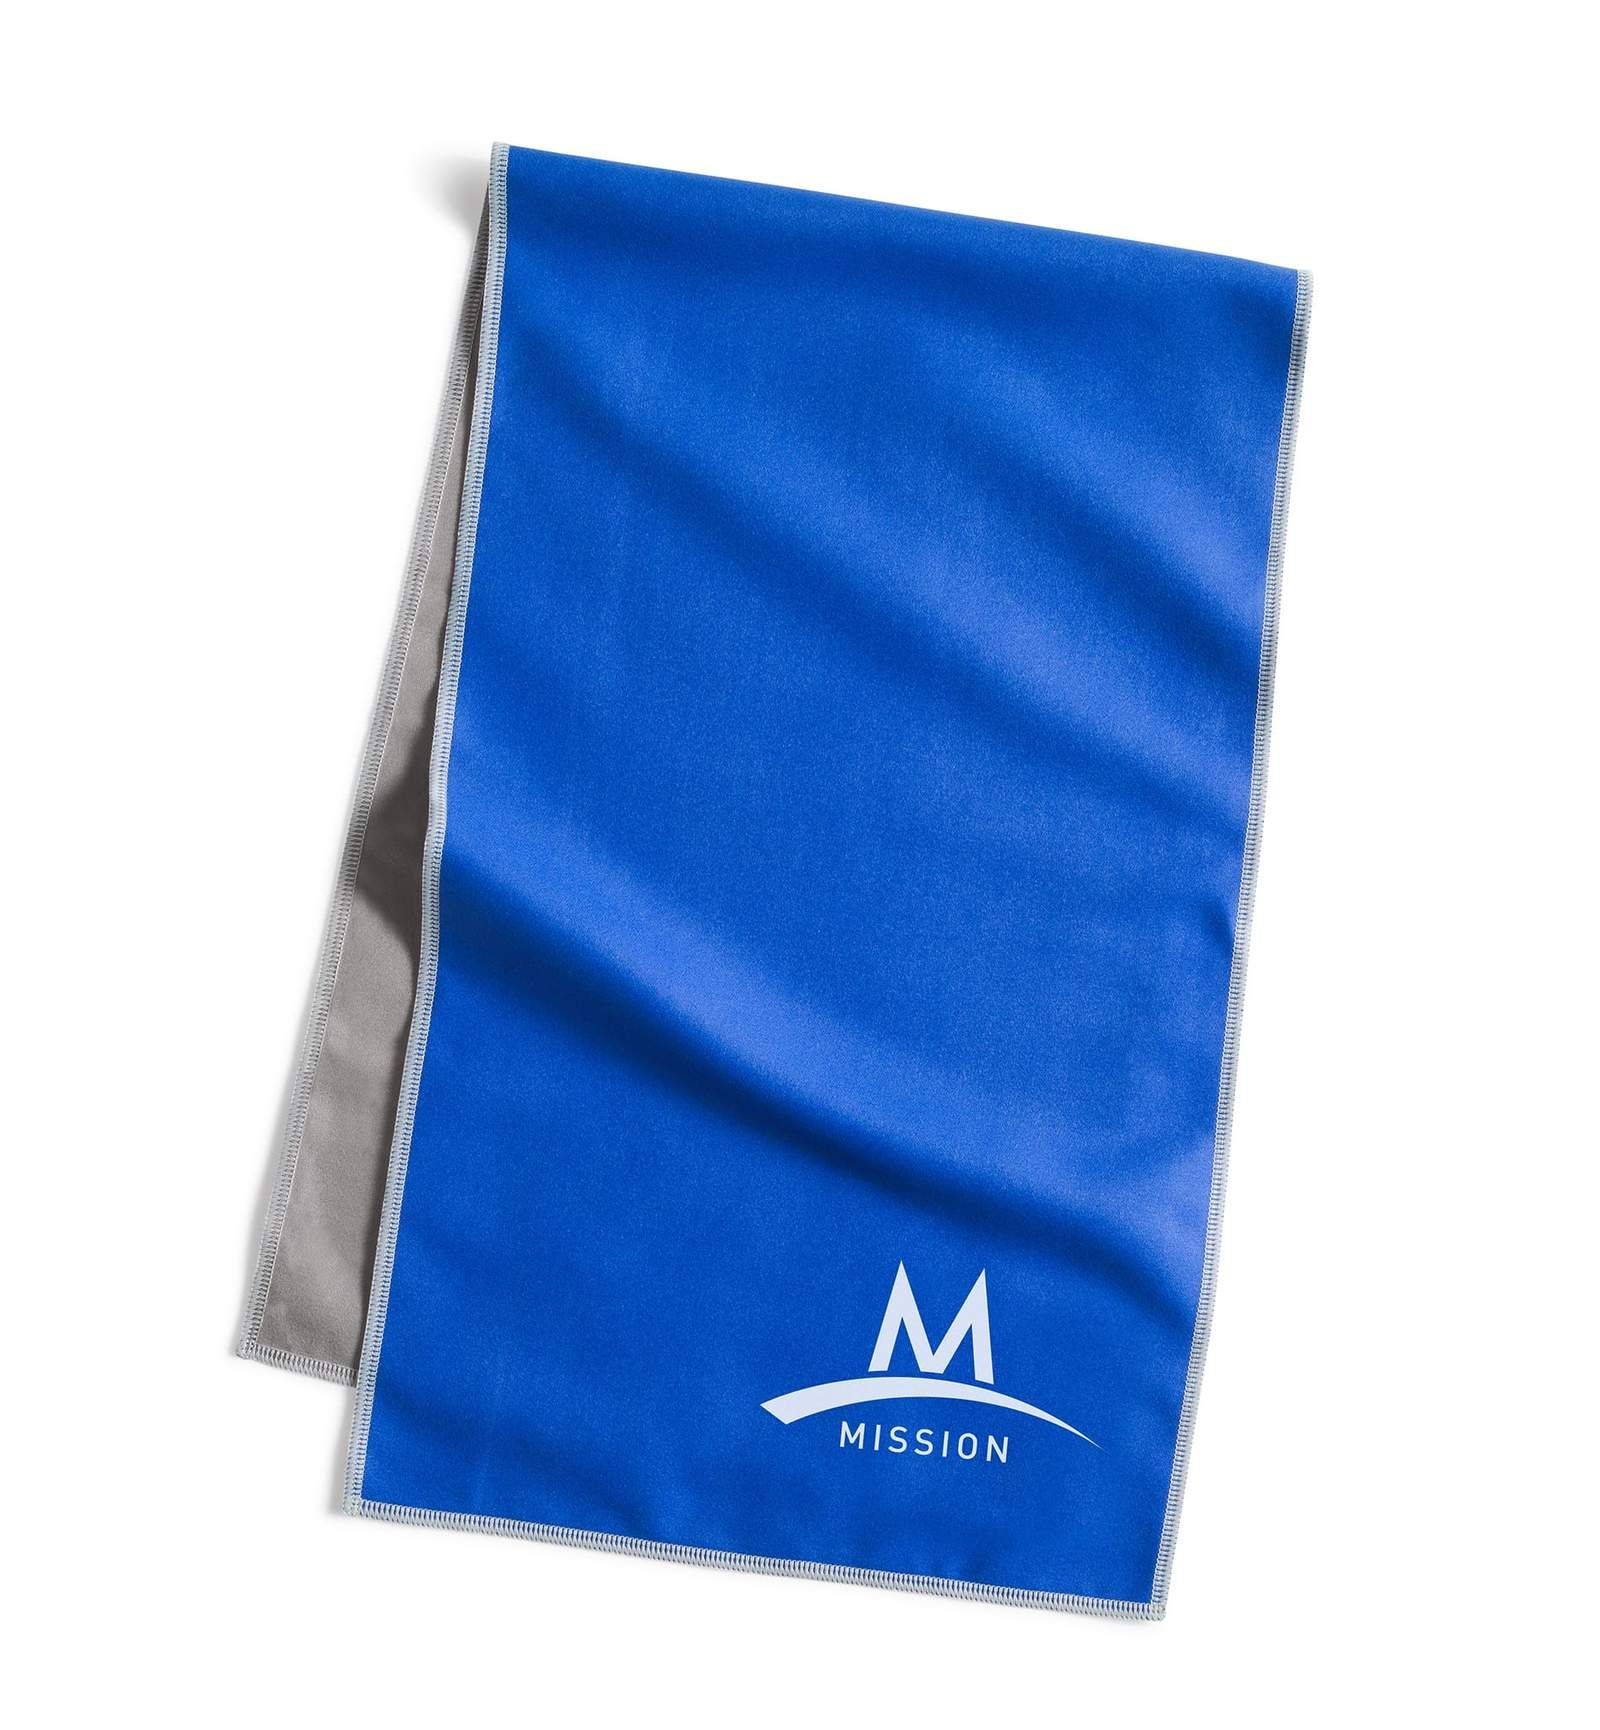 Original Cooling Towel Blue With Images Blue Towels Towel Cooling Towels